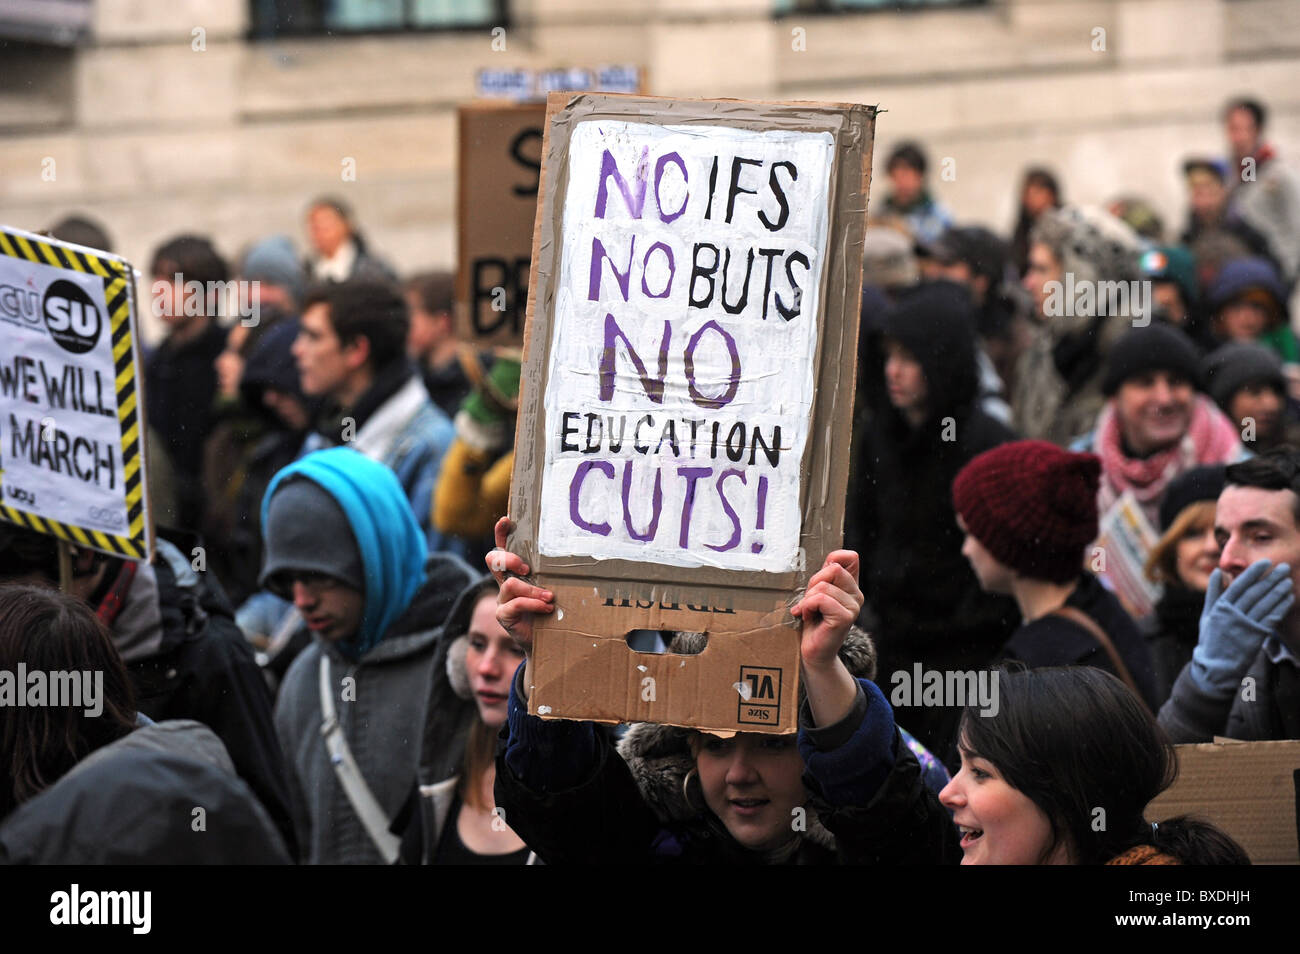 Mass demonstration in Brighton against government cuts to higher education funding - Protesters start marching with - Stock Image